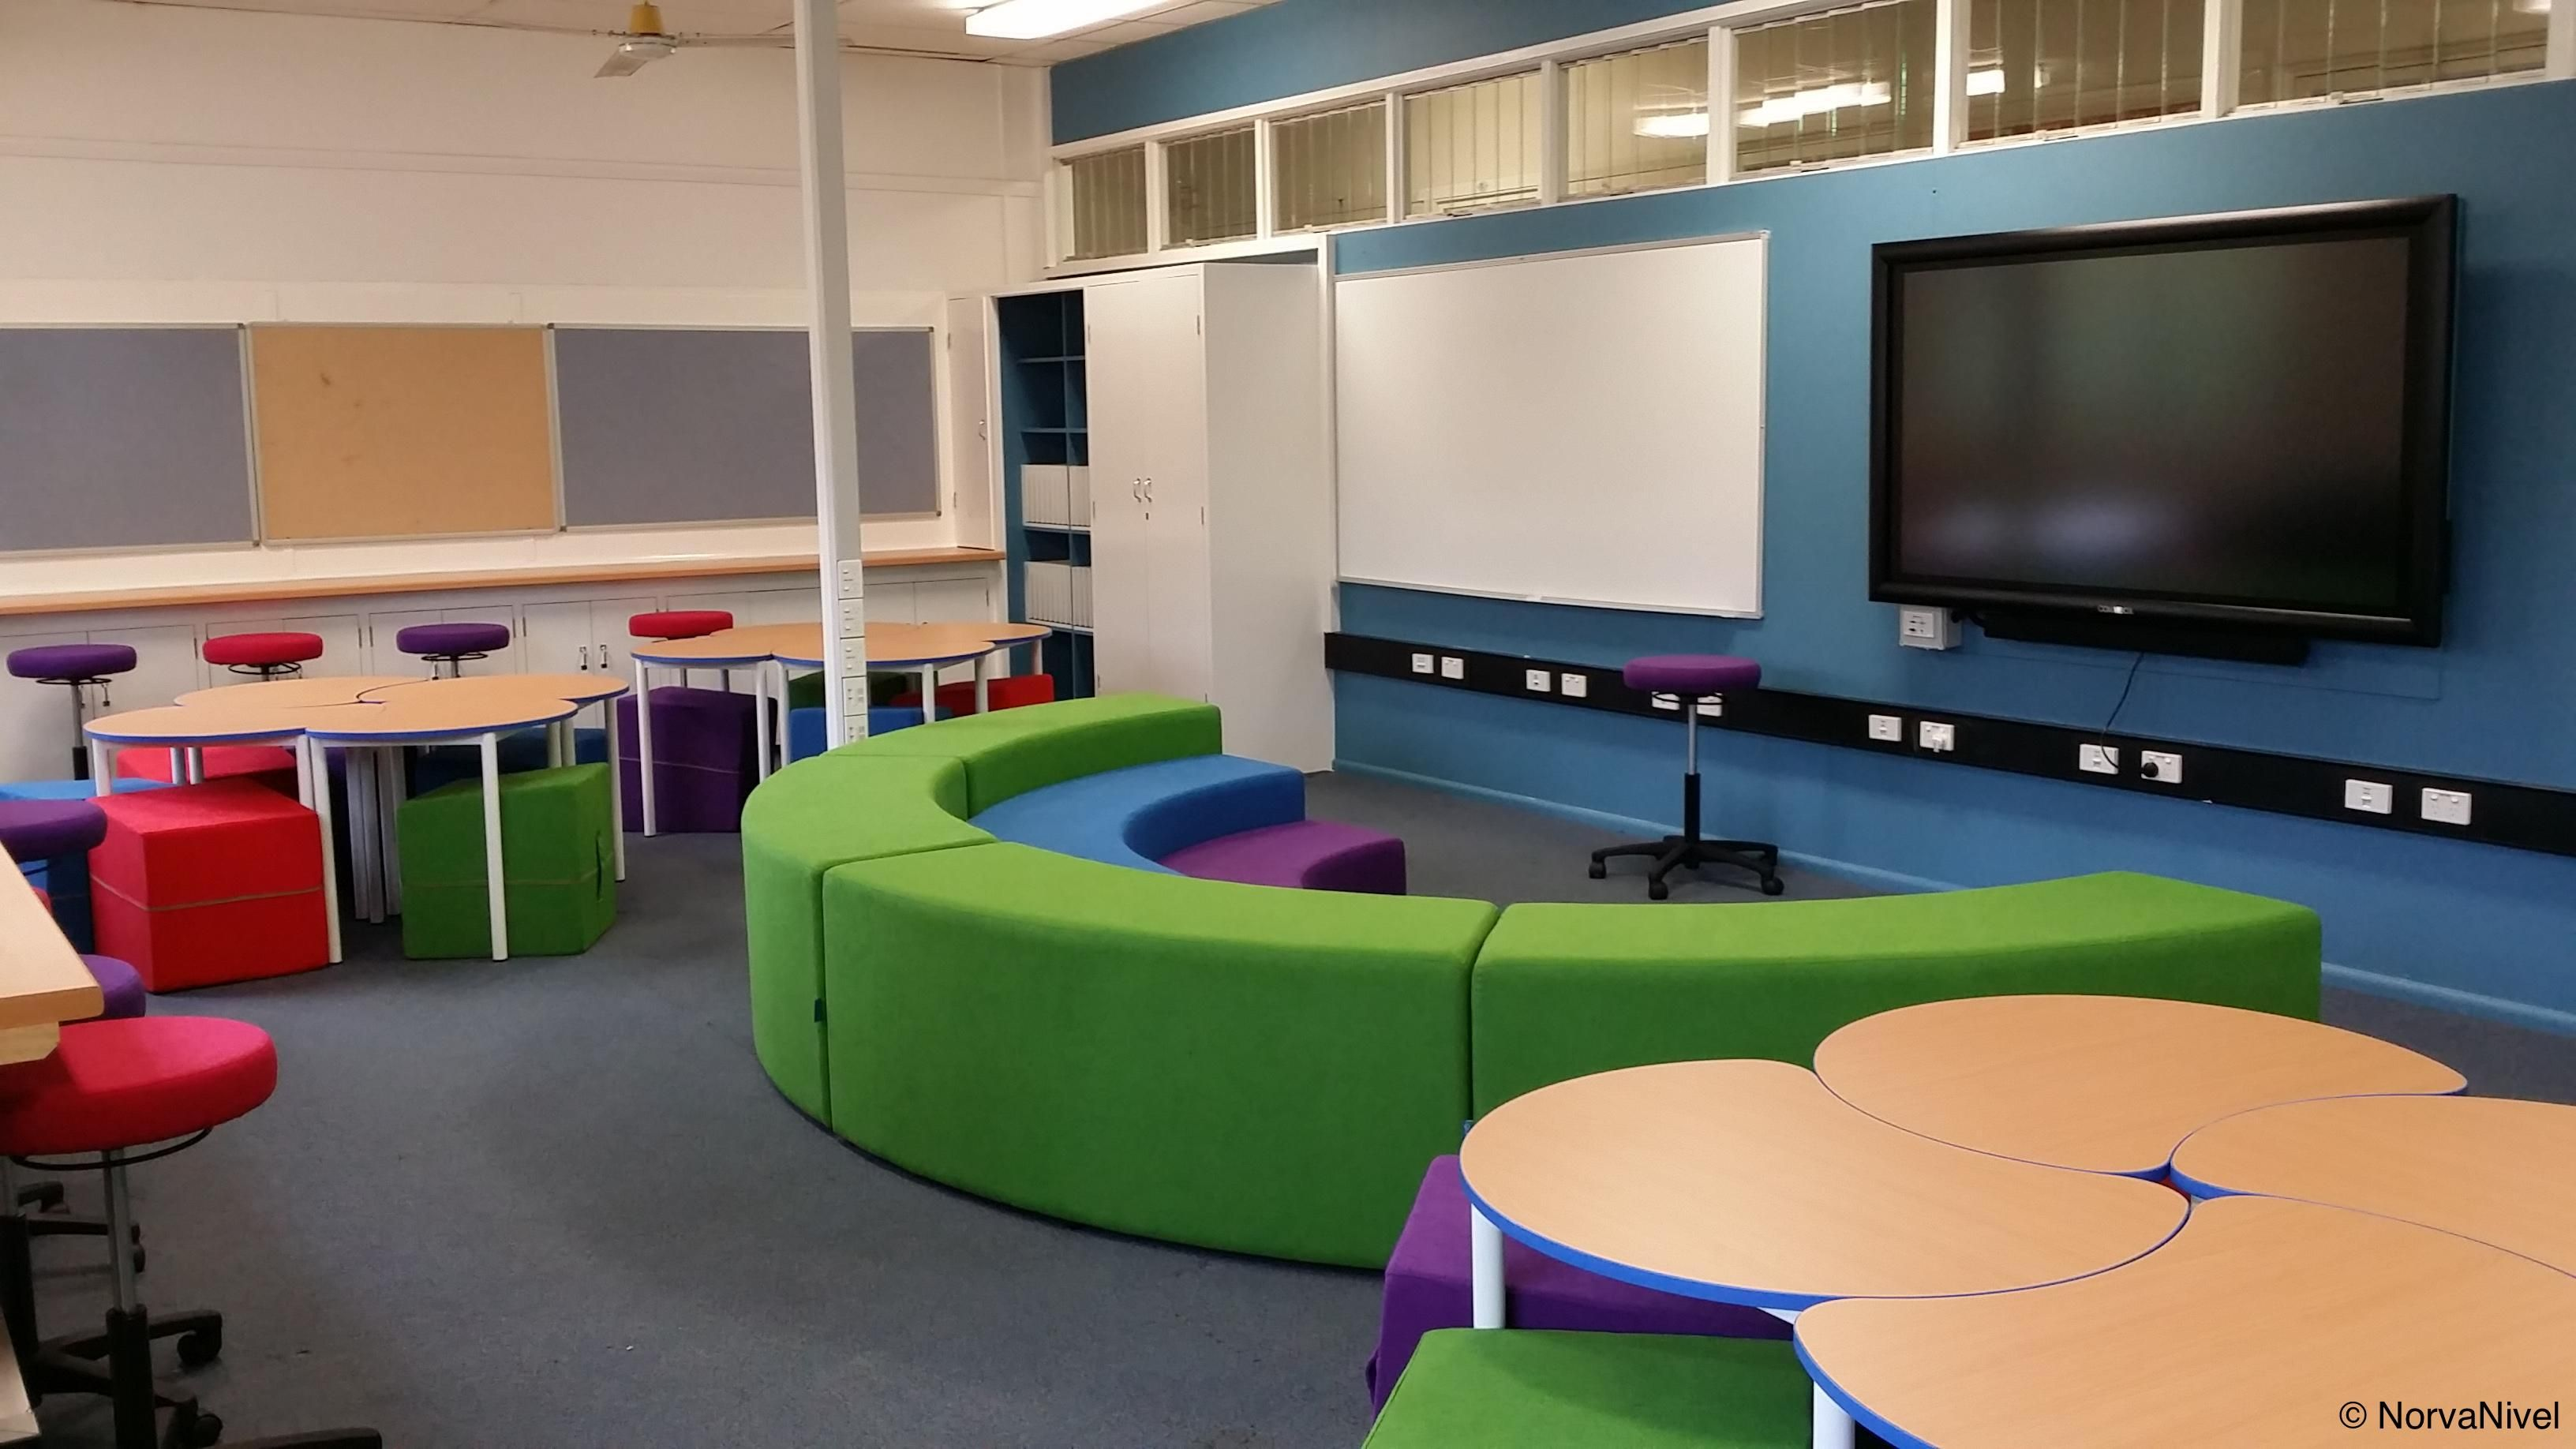 Colorful classroom with Rainbow tiered seating for group instruction and presentation and Pac tables with Miss-Shape ottomans.